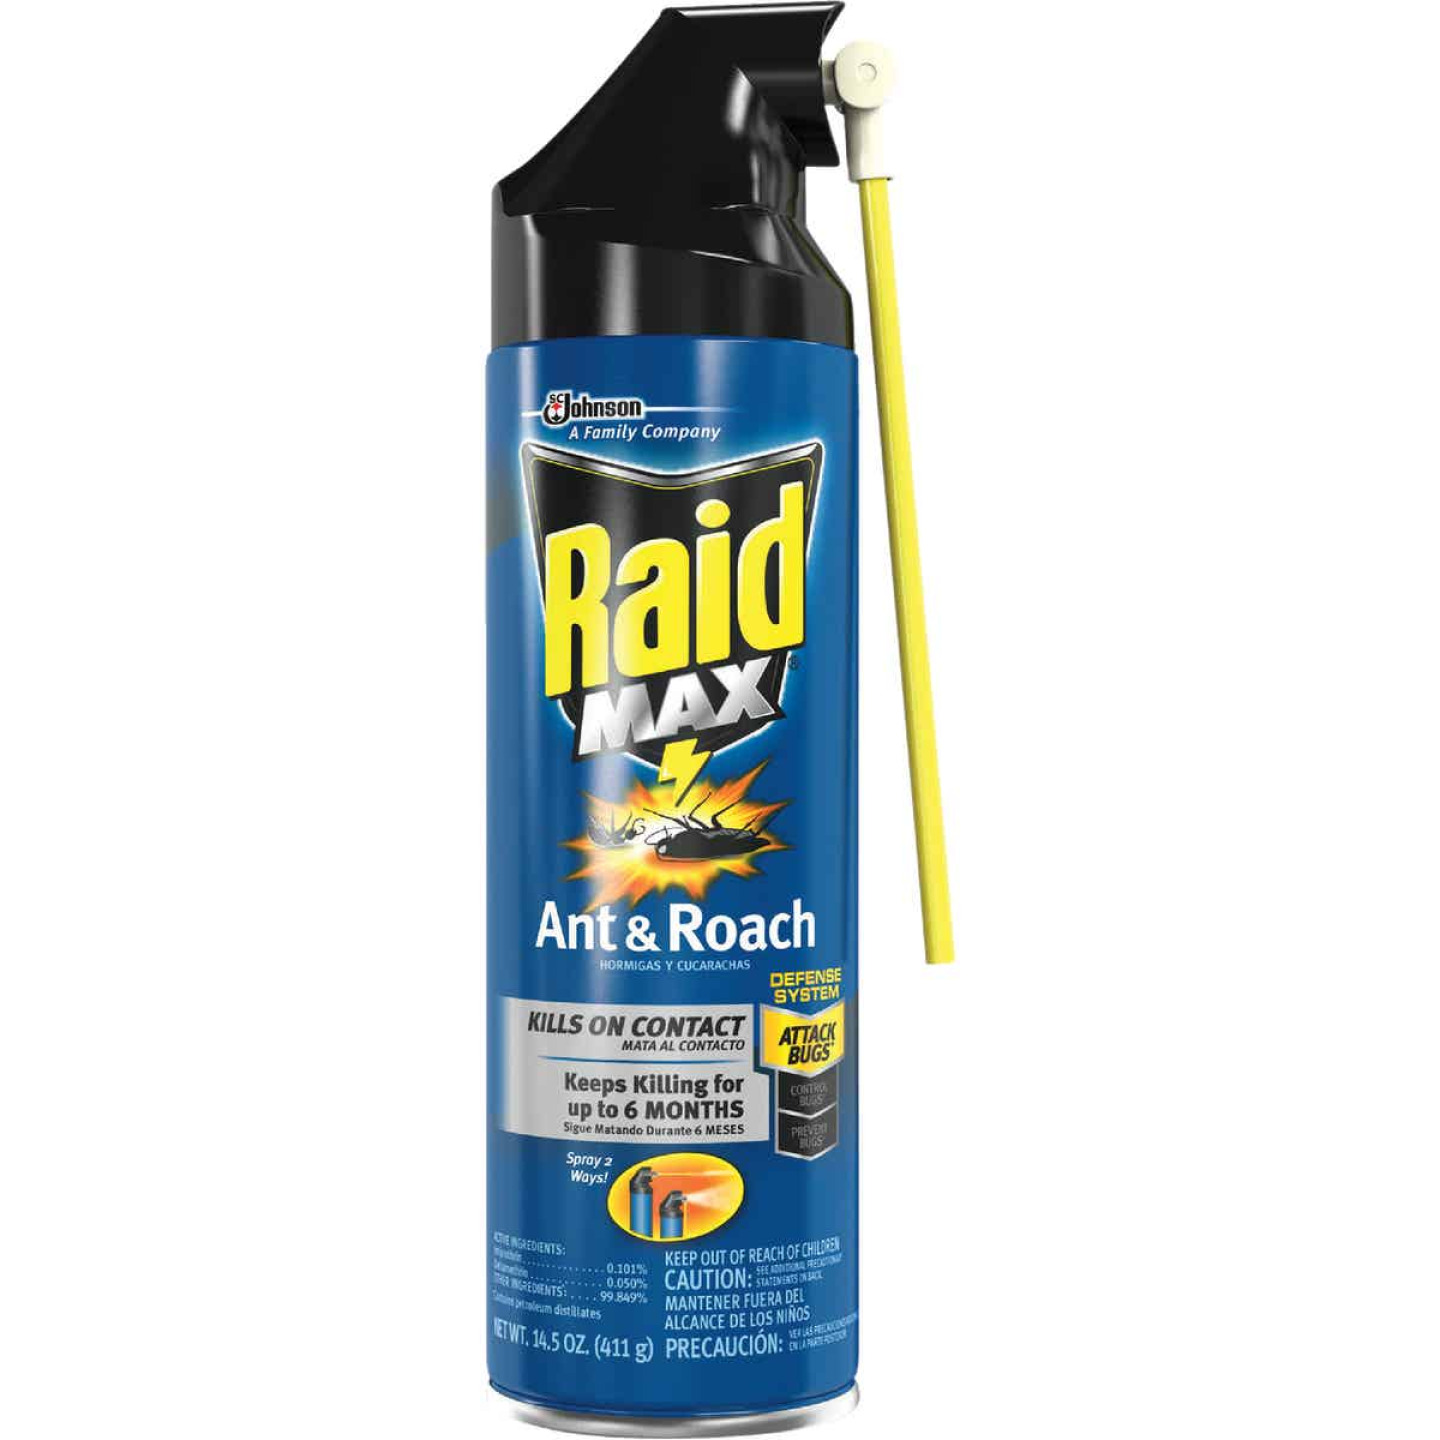 Raid Max 14.5 Oz. Aerosol Spray Ant & Roach Killer Image 1